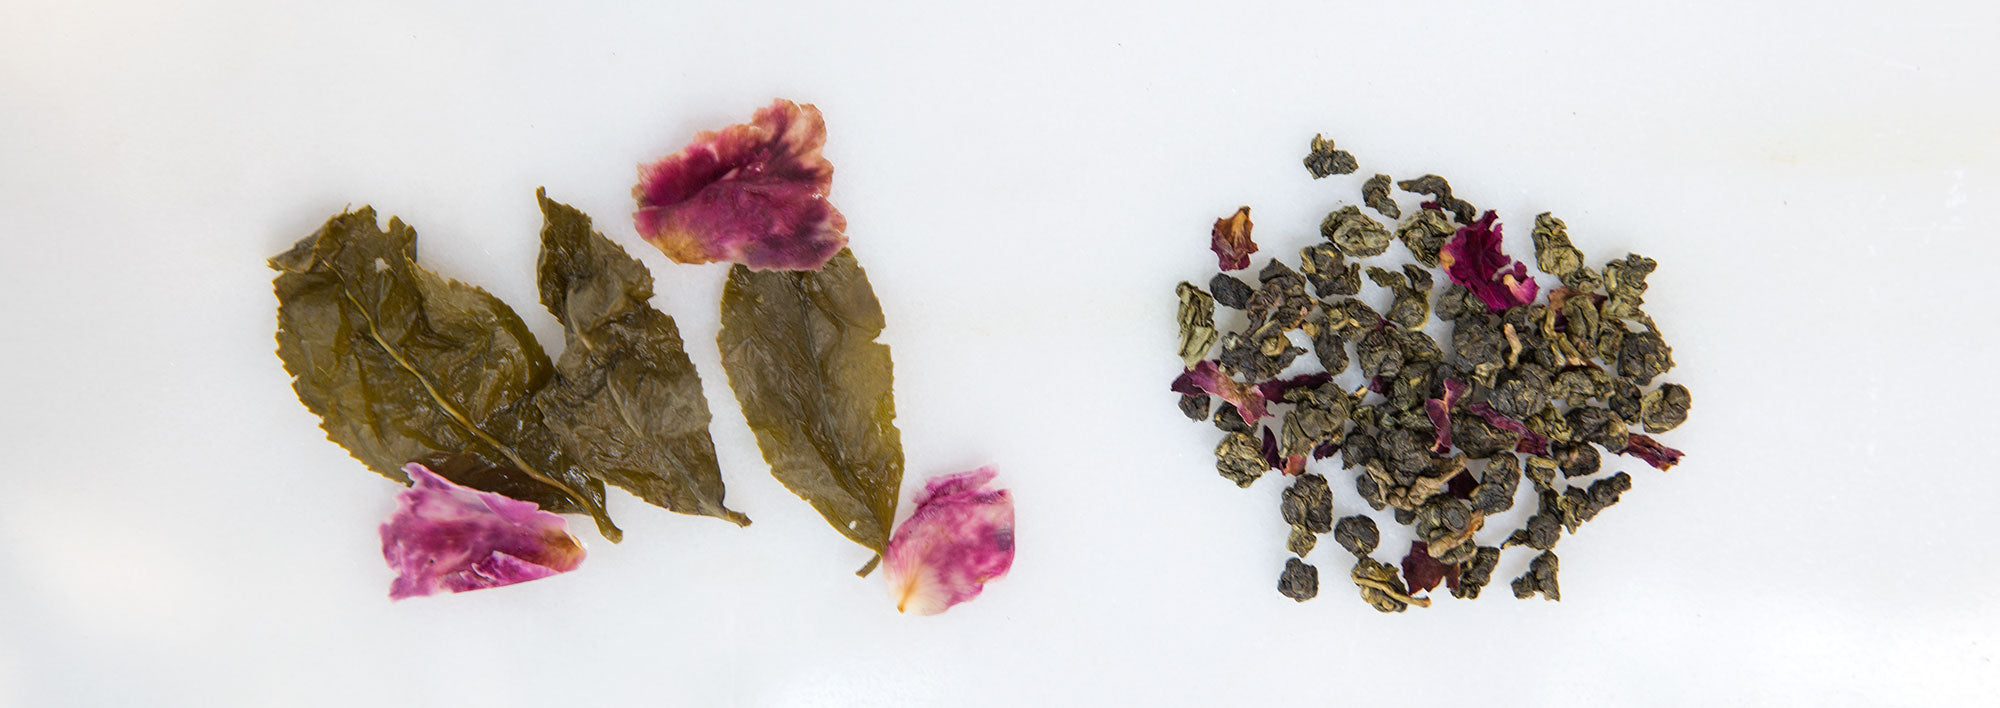 Rose-Scented Oolong Tea